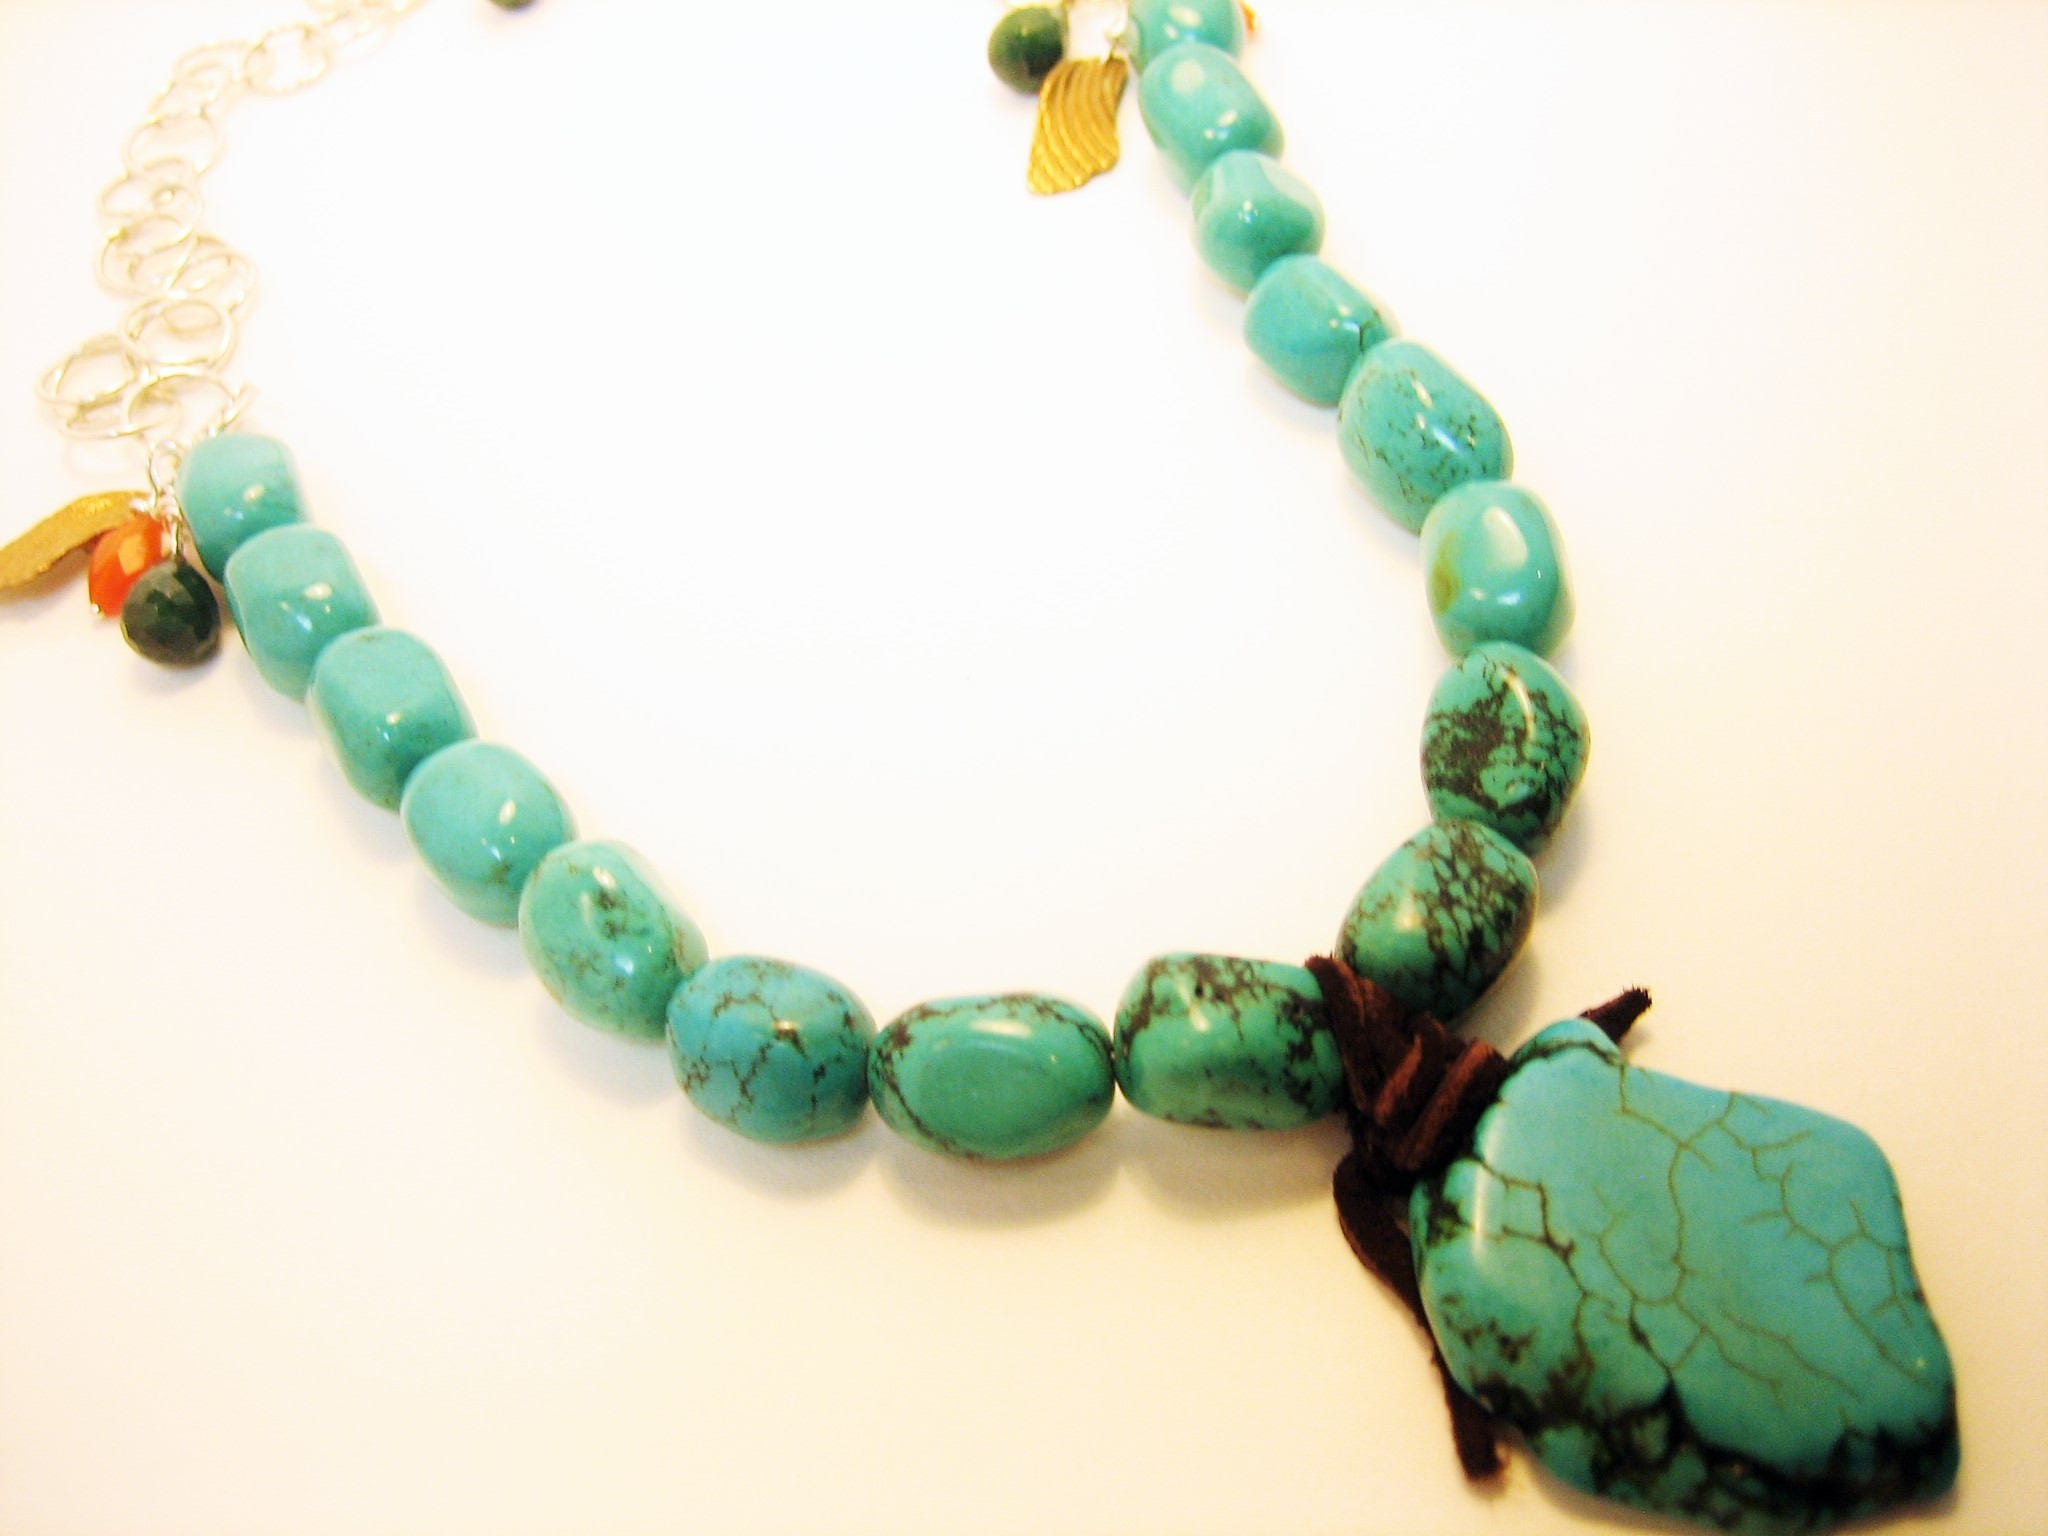 Turquoise nugget necklace, large turquoise pendant necklace, turquoise necklace with charms, leather wrapped turquoise necklace, rustic